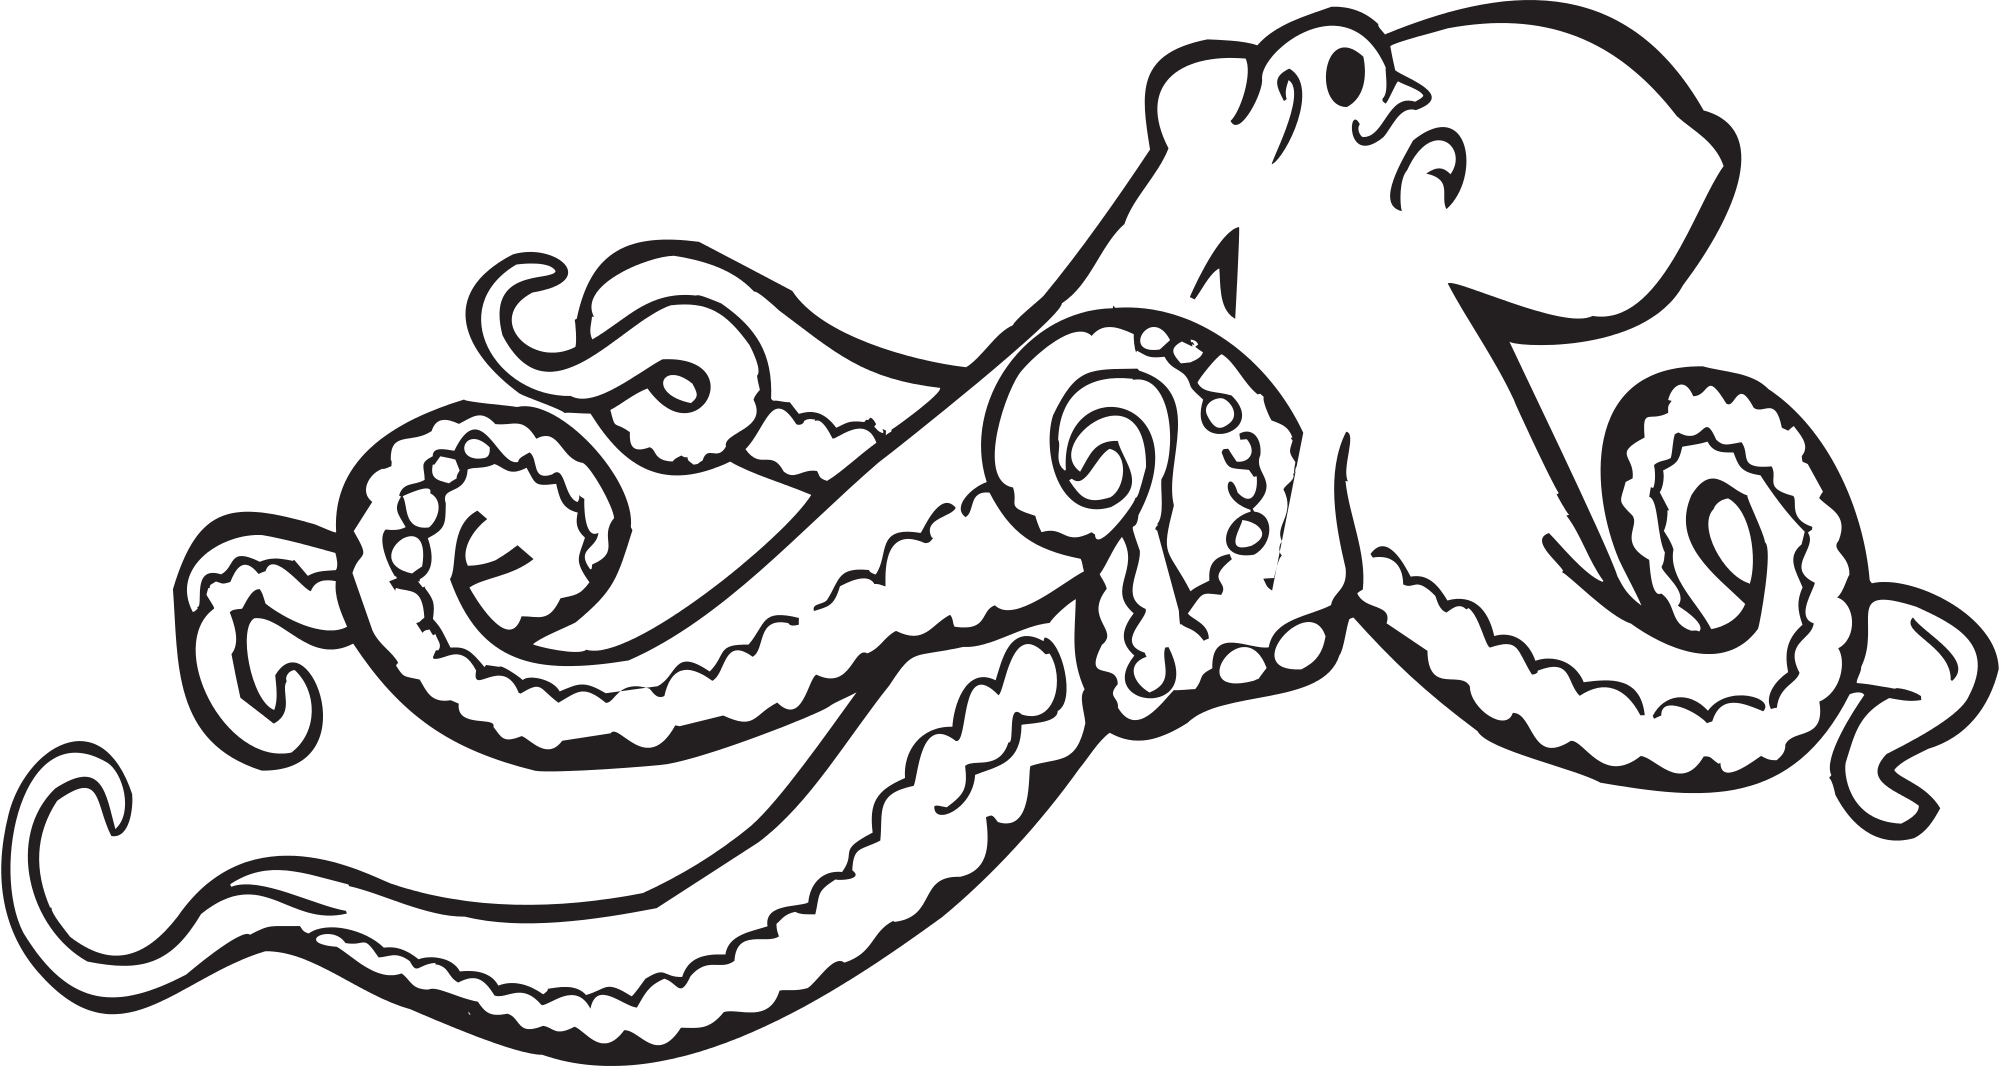 Clipart rock giant. Group of octopi found